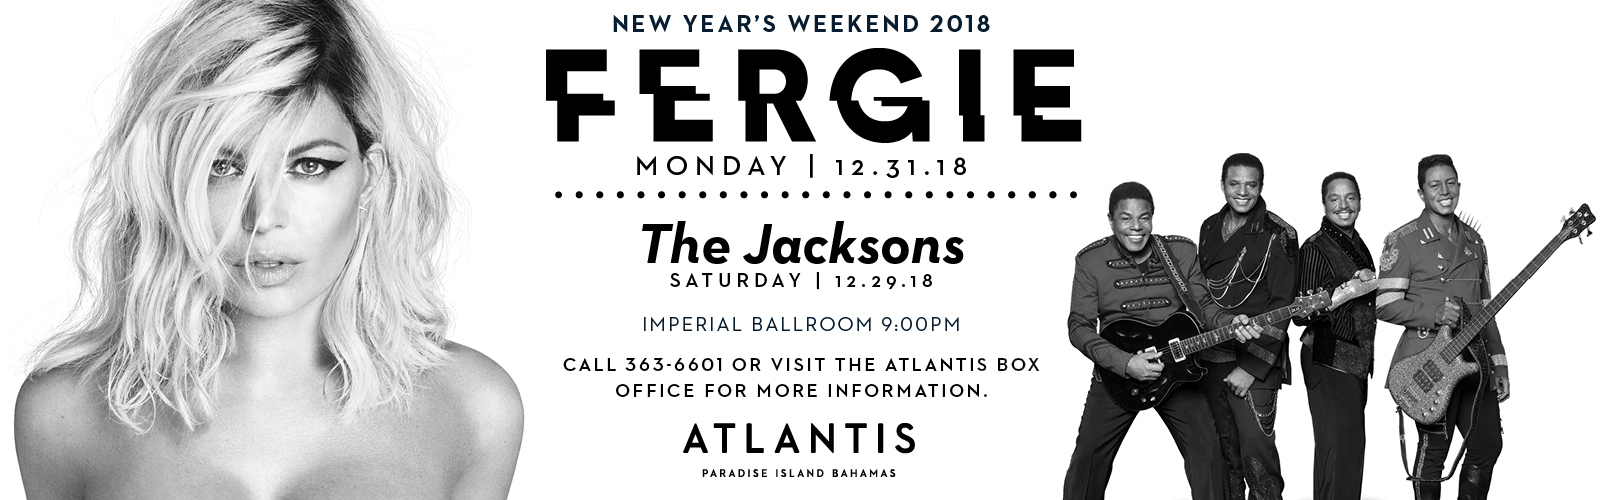 Fergie and the Jacksons Atlantis New Years Shows